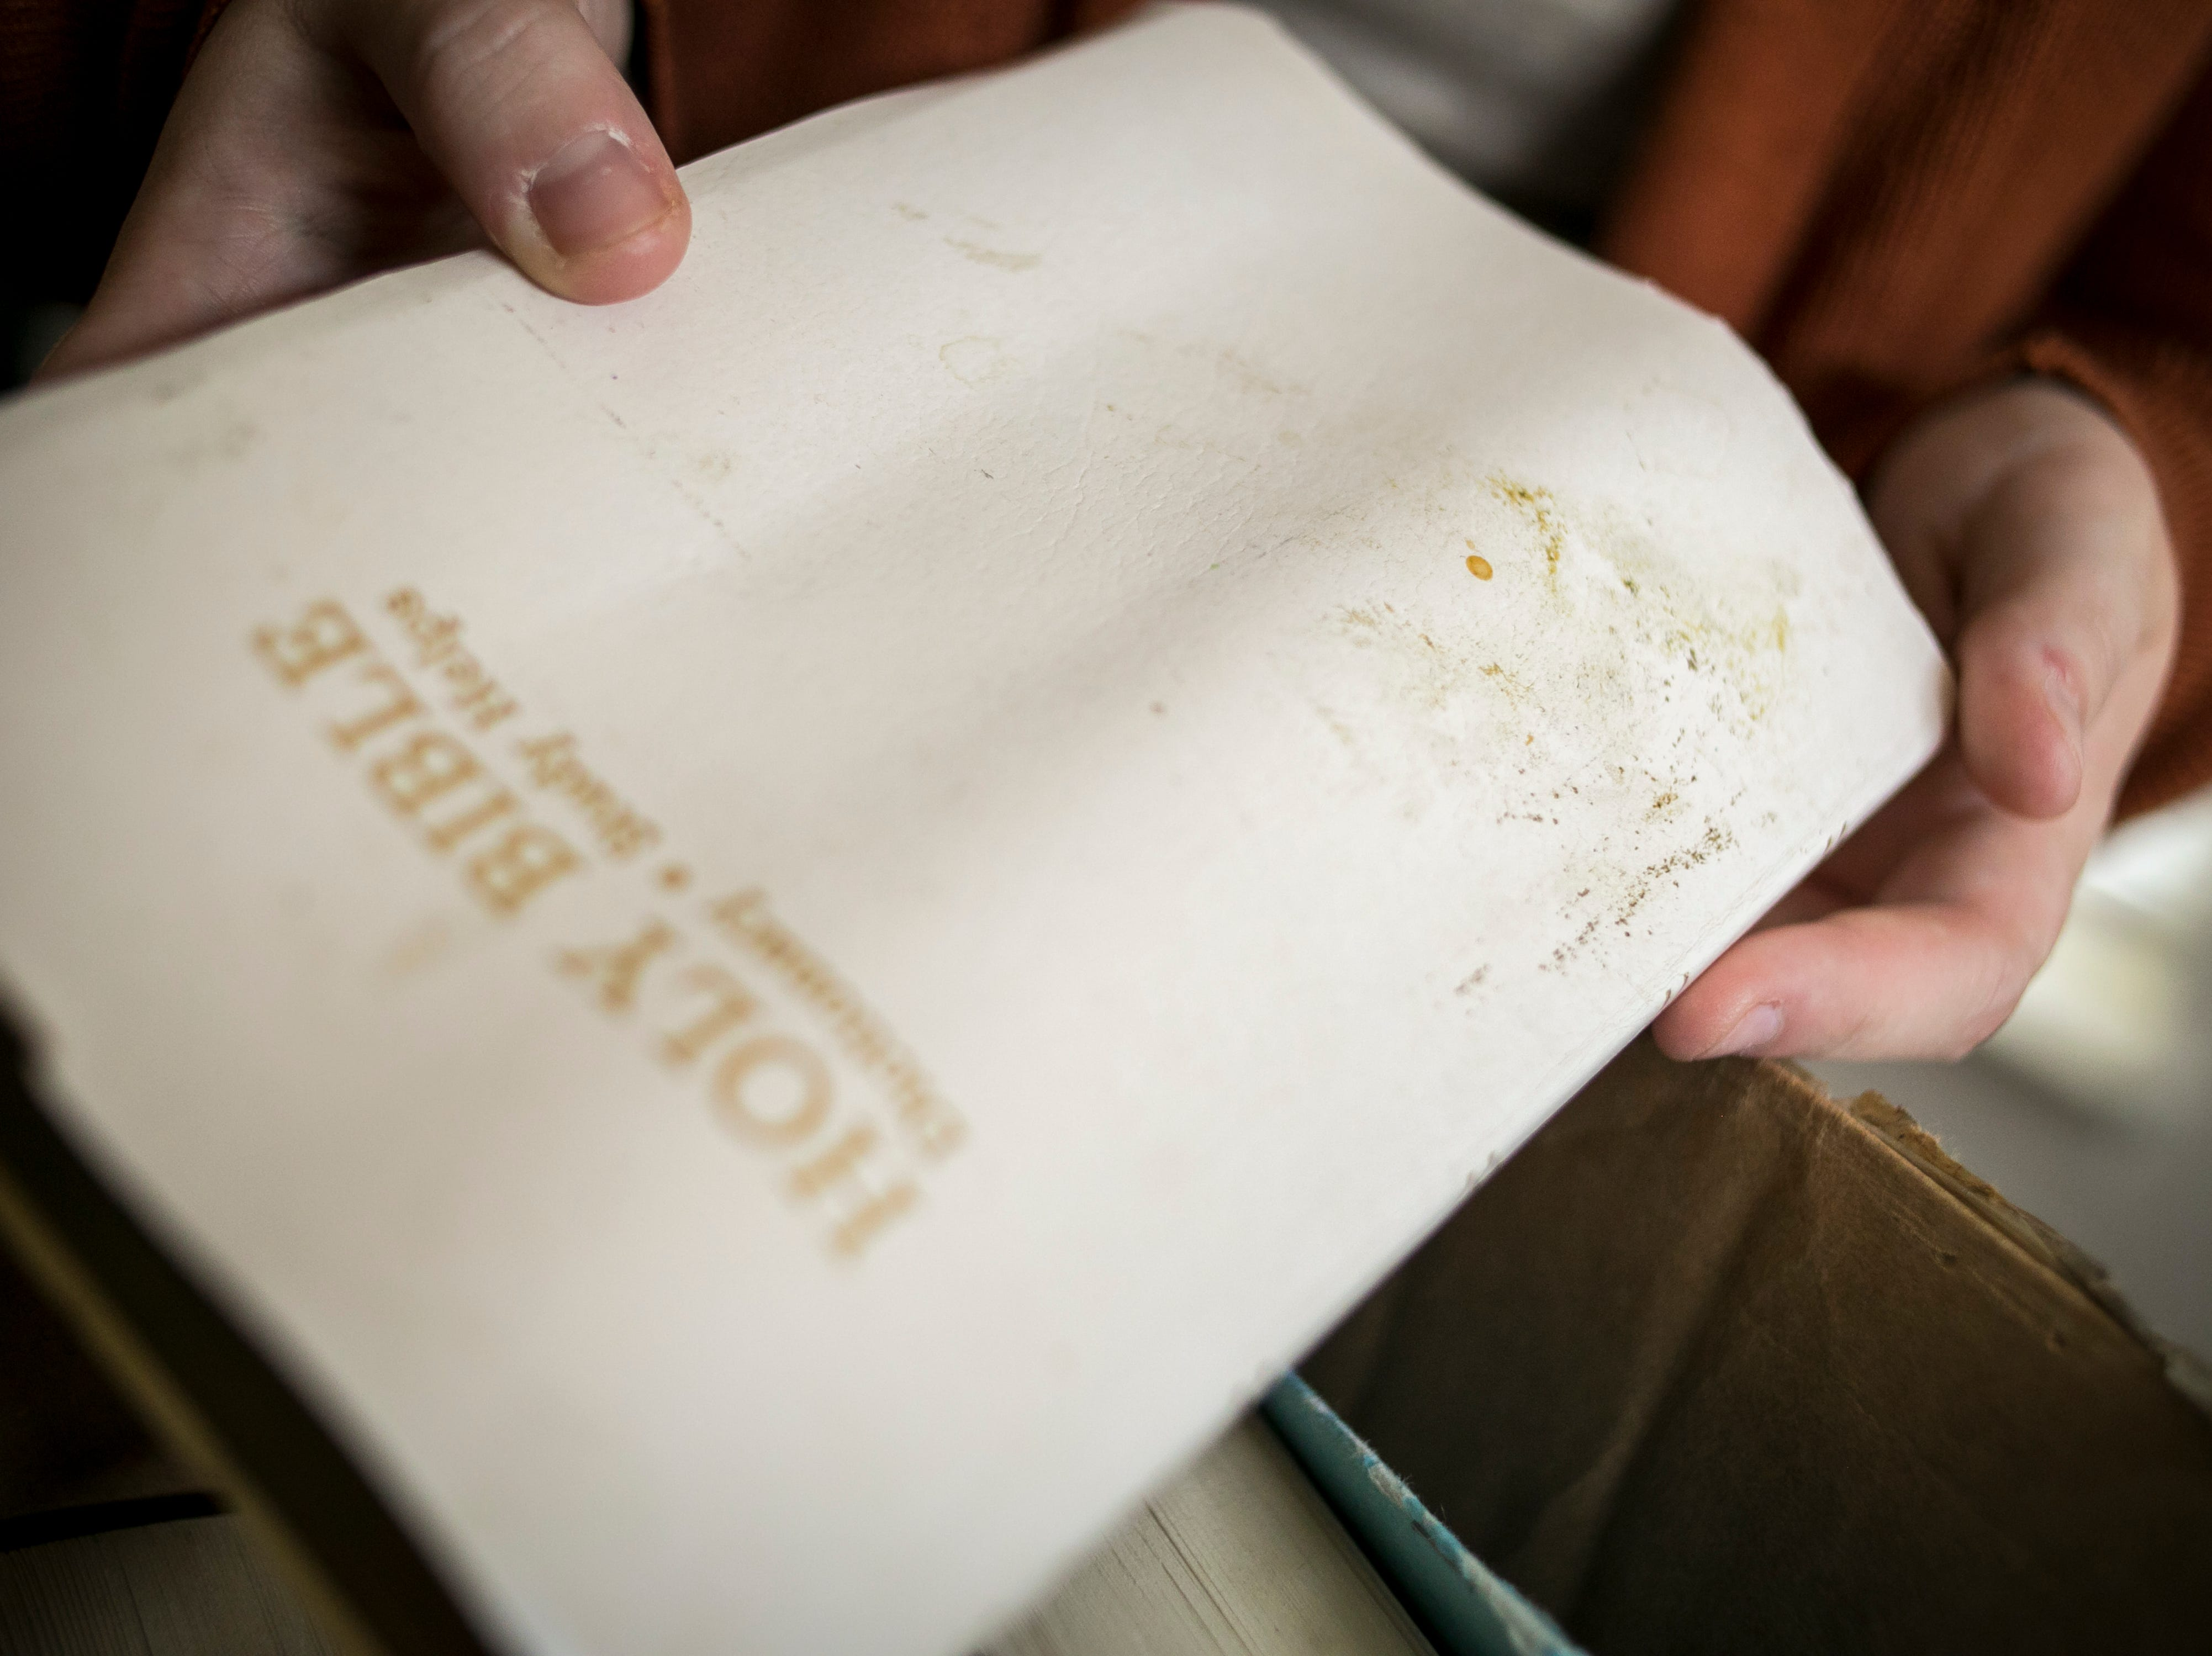 Andrea Cacho examines a water-damaged family Bible, after a bad experience moving from Ft. Campbell to Ft. Belvoir back in July. September 4, 2018.